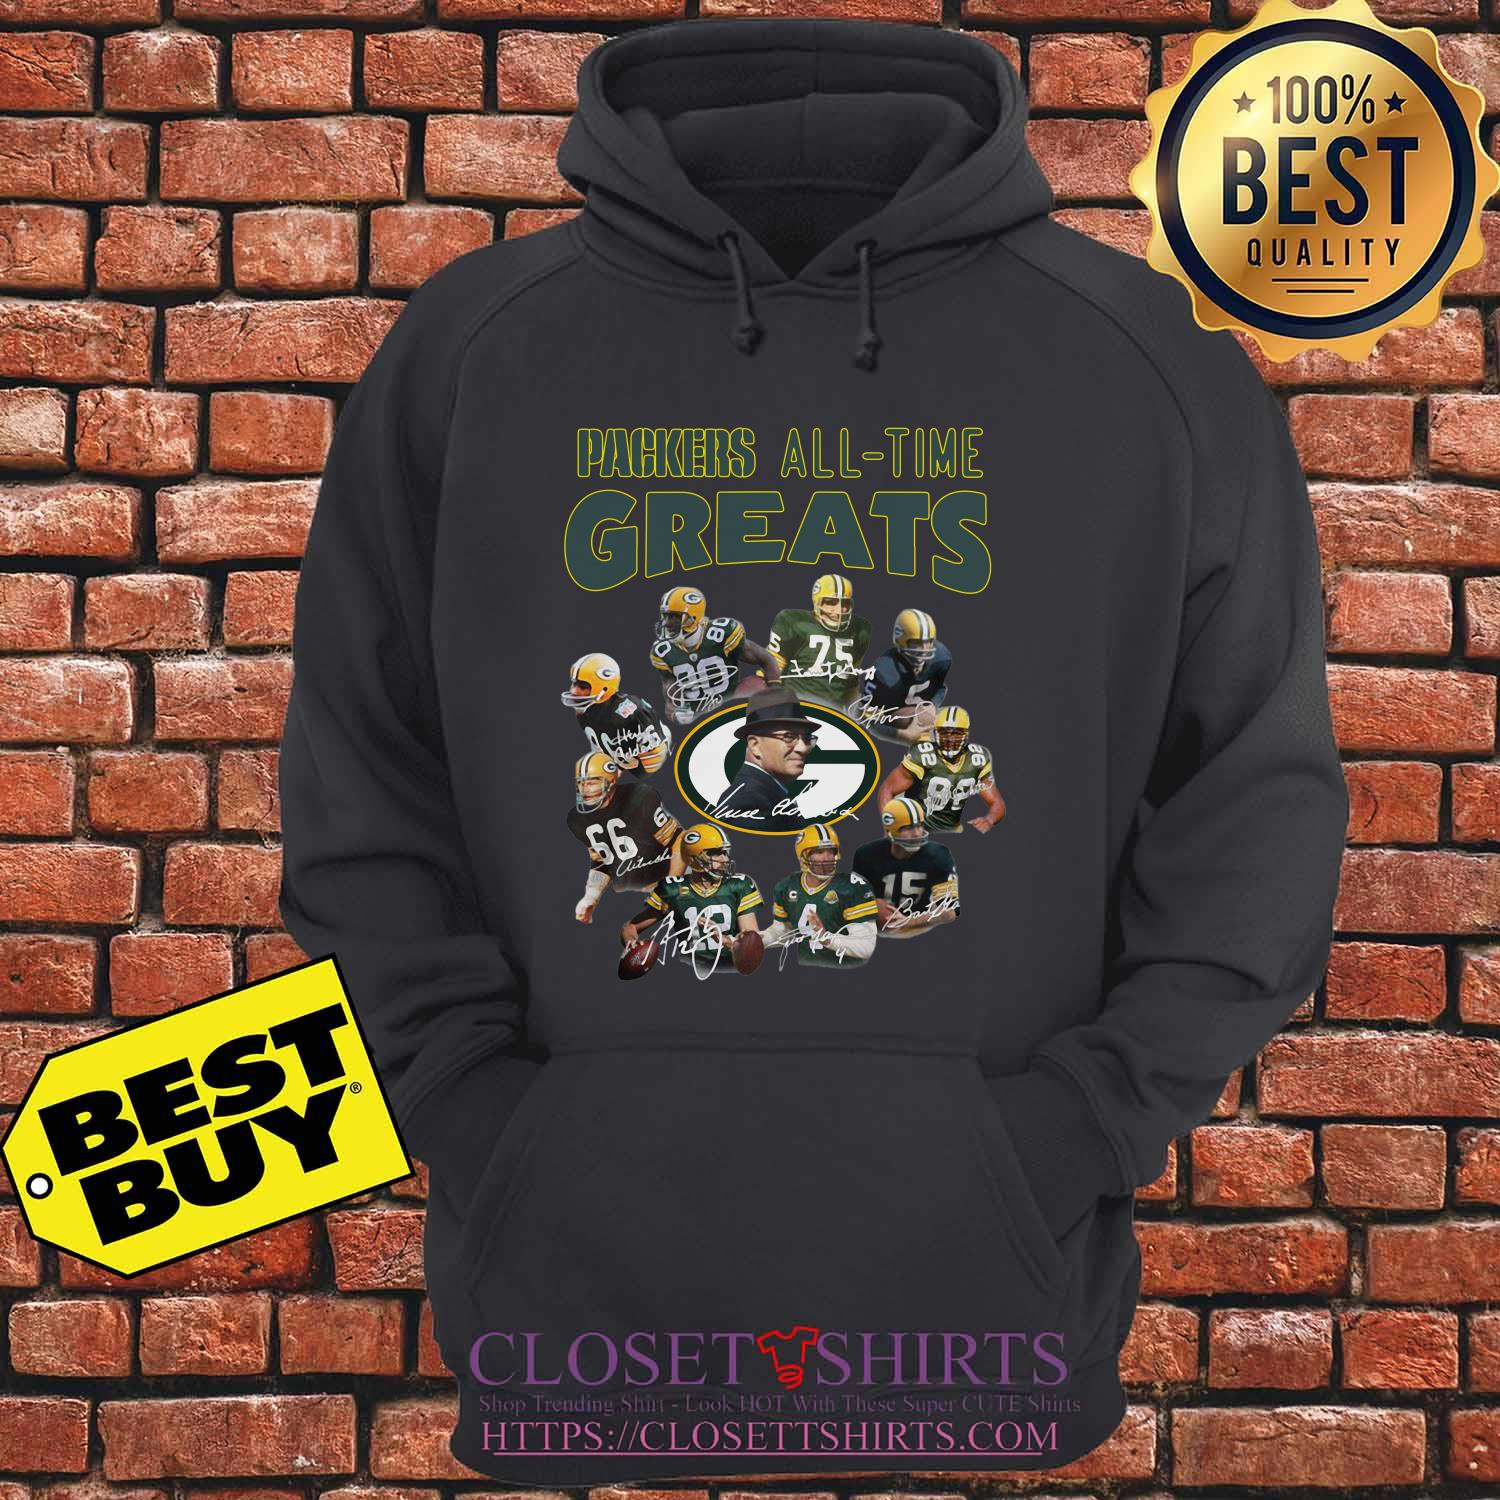 Green Bay Packers Players All Time Greats Signatures hoodie